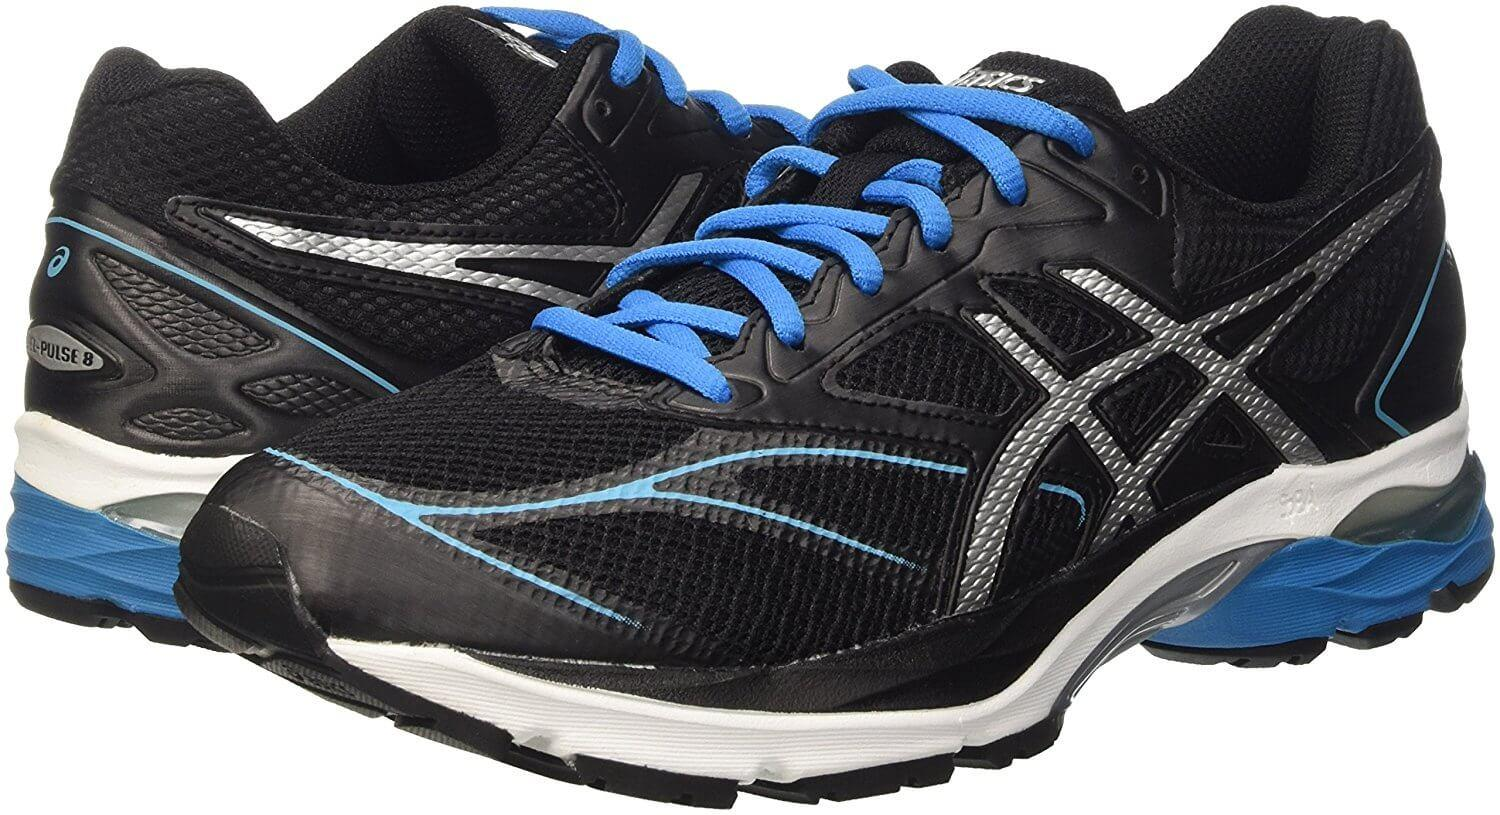 pequeño Queja leopardo  Asics Gel Pulse 8 Reviewed, Tested & Compared in 2020 | RunnerClick